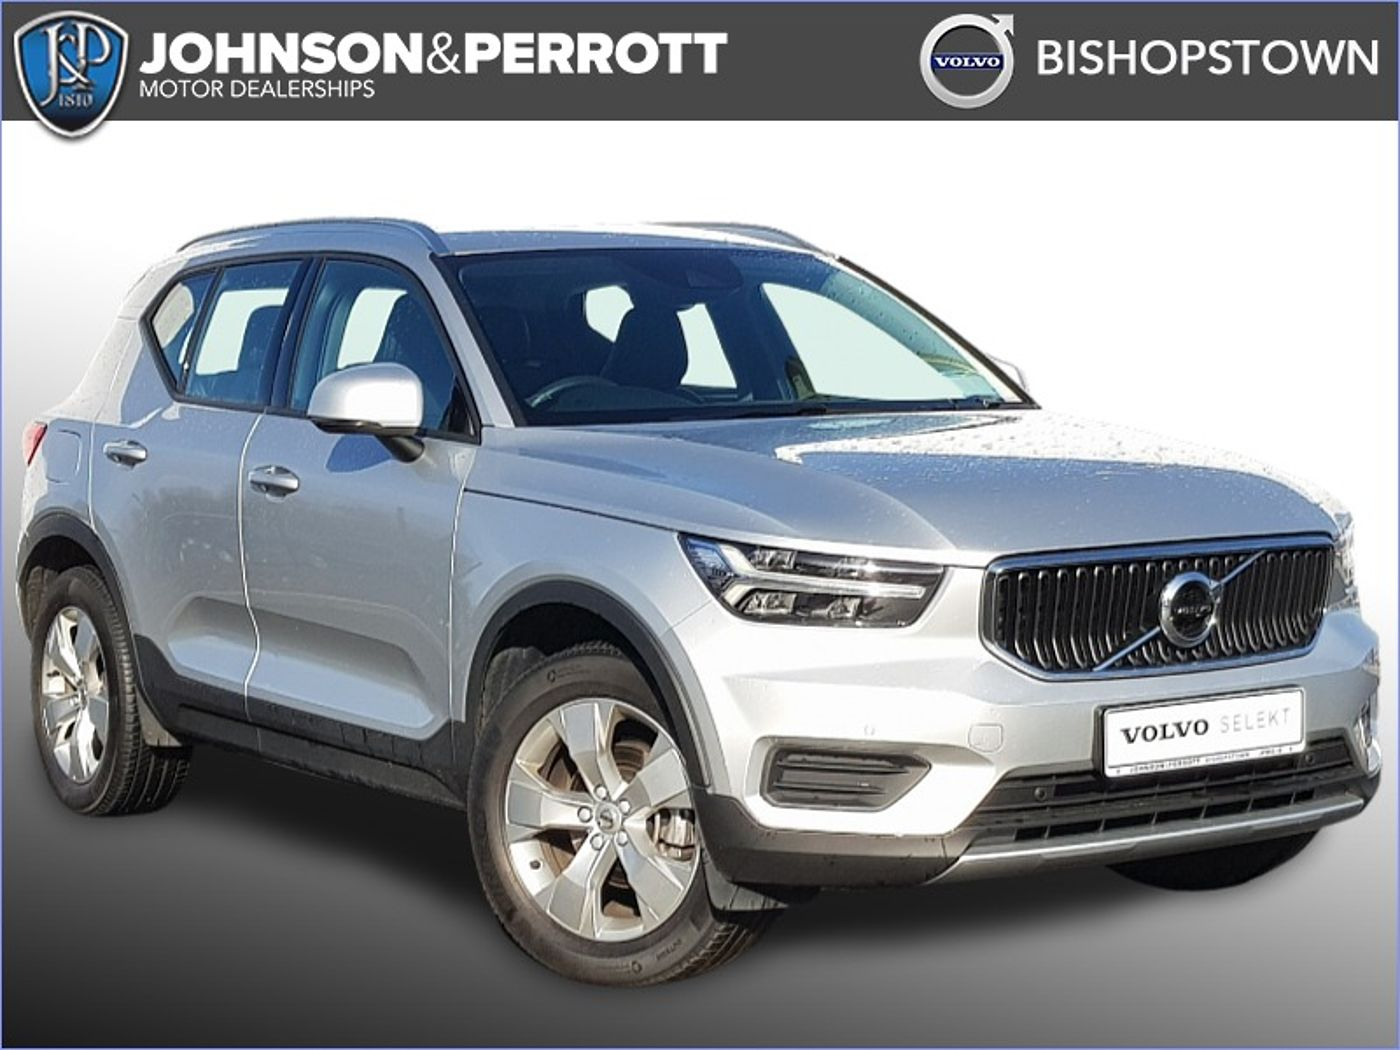 Volvo  T3 Momentum (Leather Upholstery, Rear Camera, Power Tailgate)